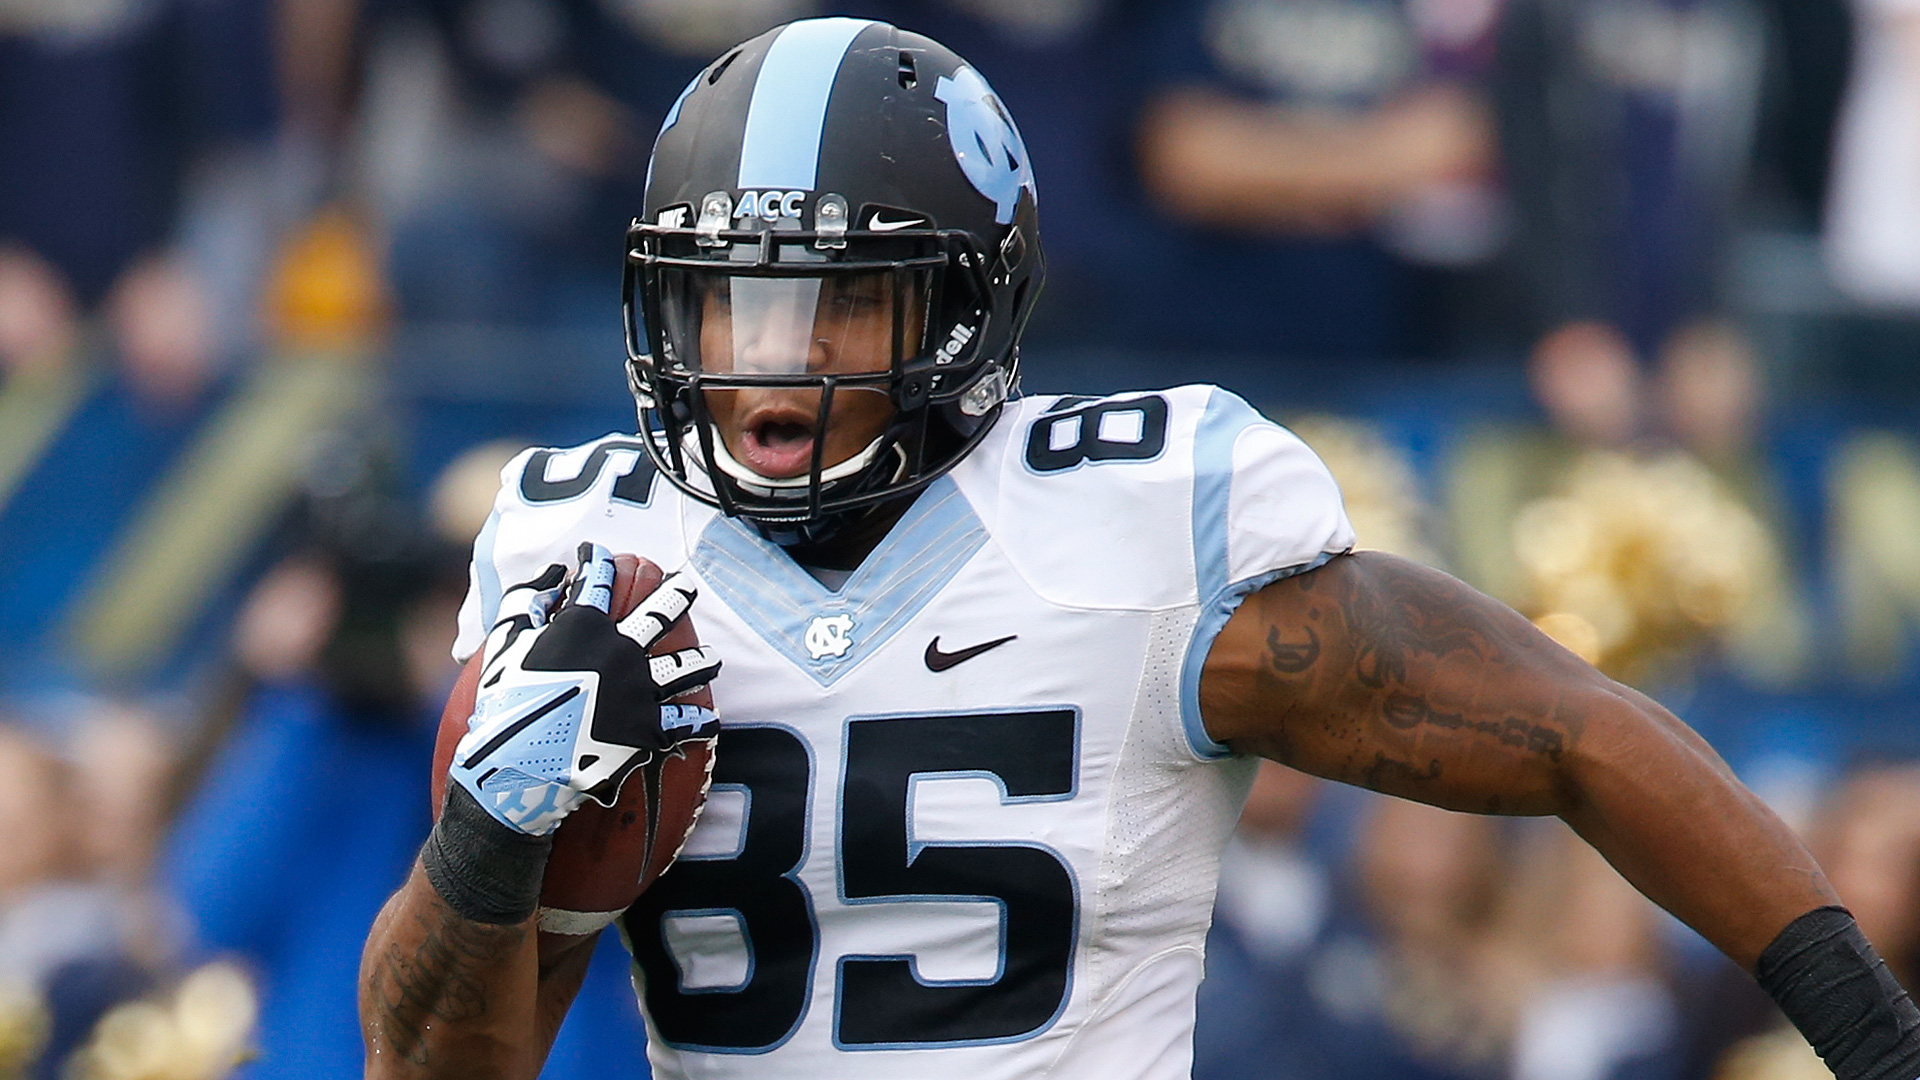 2014 NFL Draft -- Lions select Eric Ebron with No. 10 pick